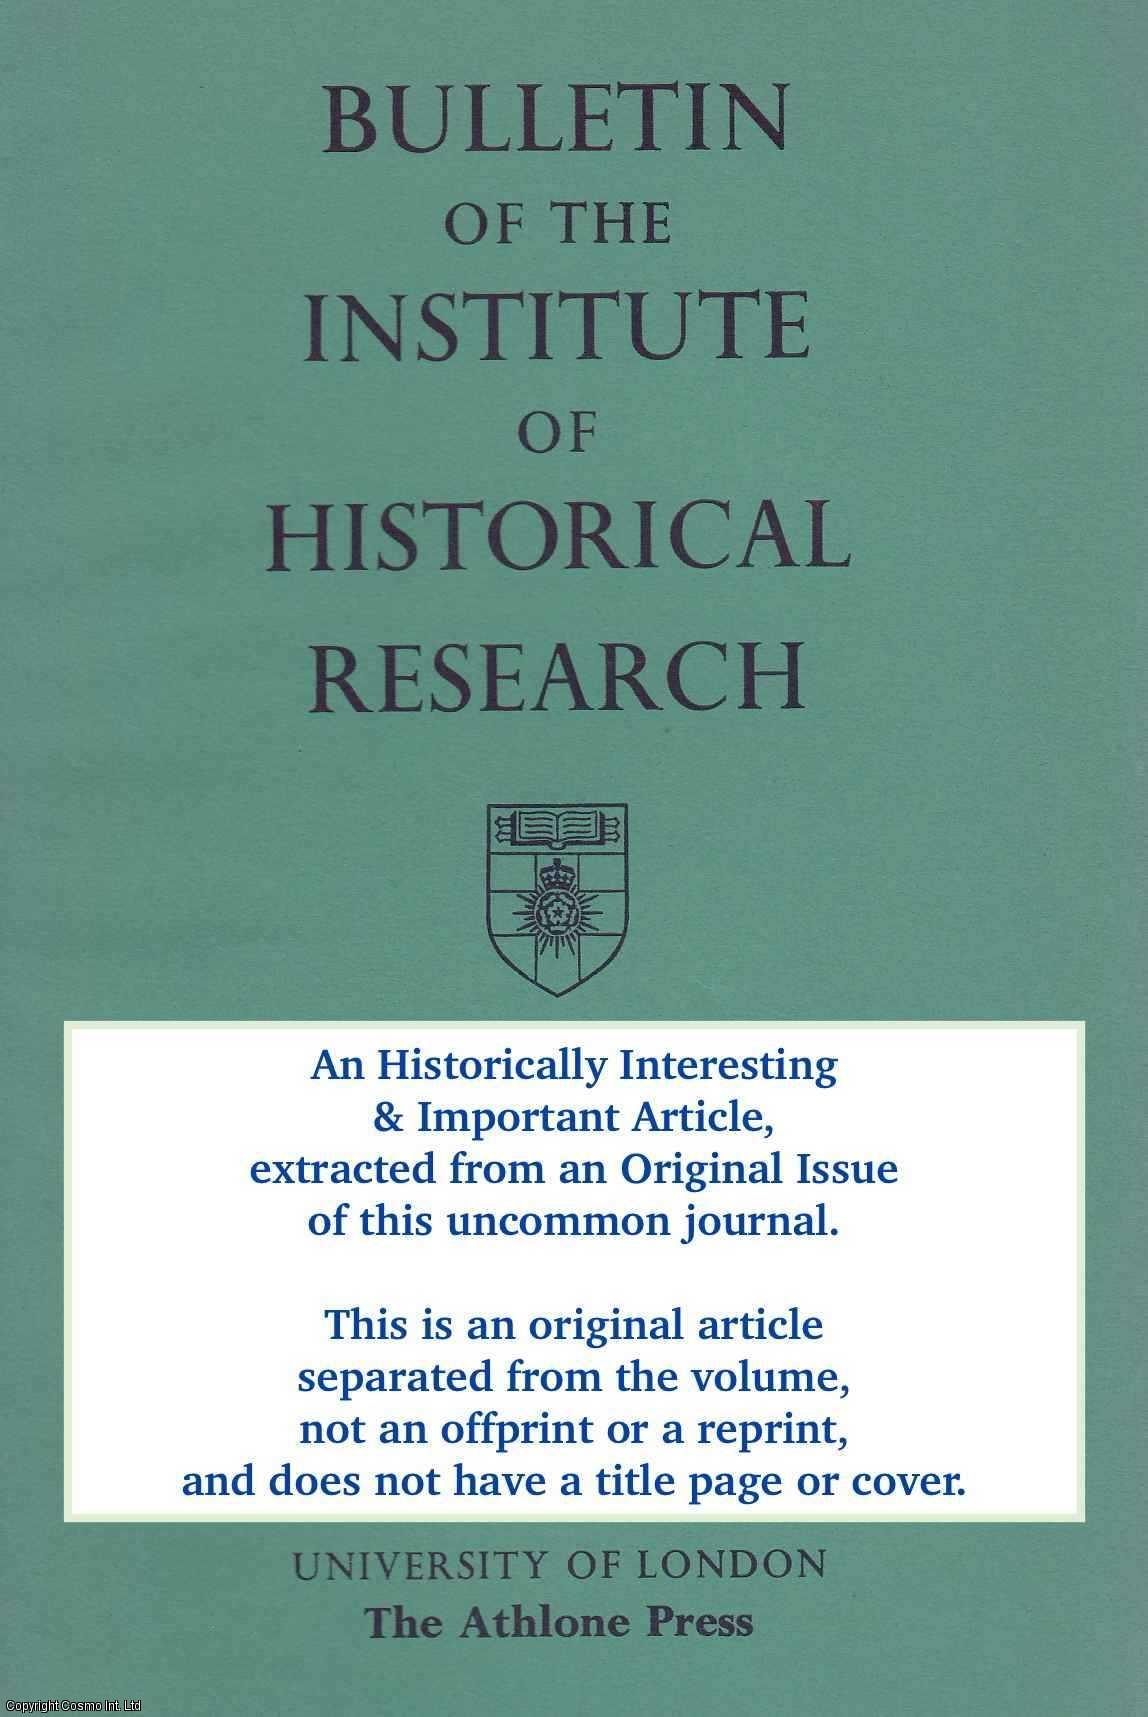 SEDDON, P.R. - The Origins of The Nottinghamshire Whigs: an Analysis of The Subscribers to The Election Expenses of Sir Scrope Howe and John White. An original article from the Bulletin of The Institute of Historical Research 1996.